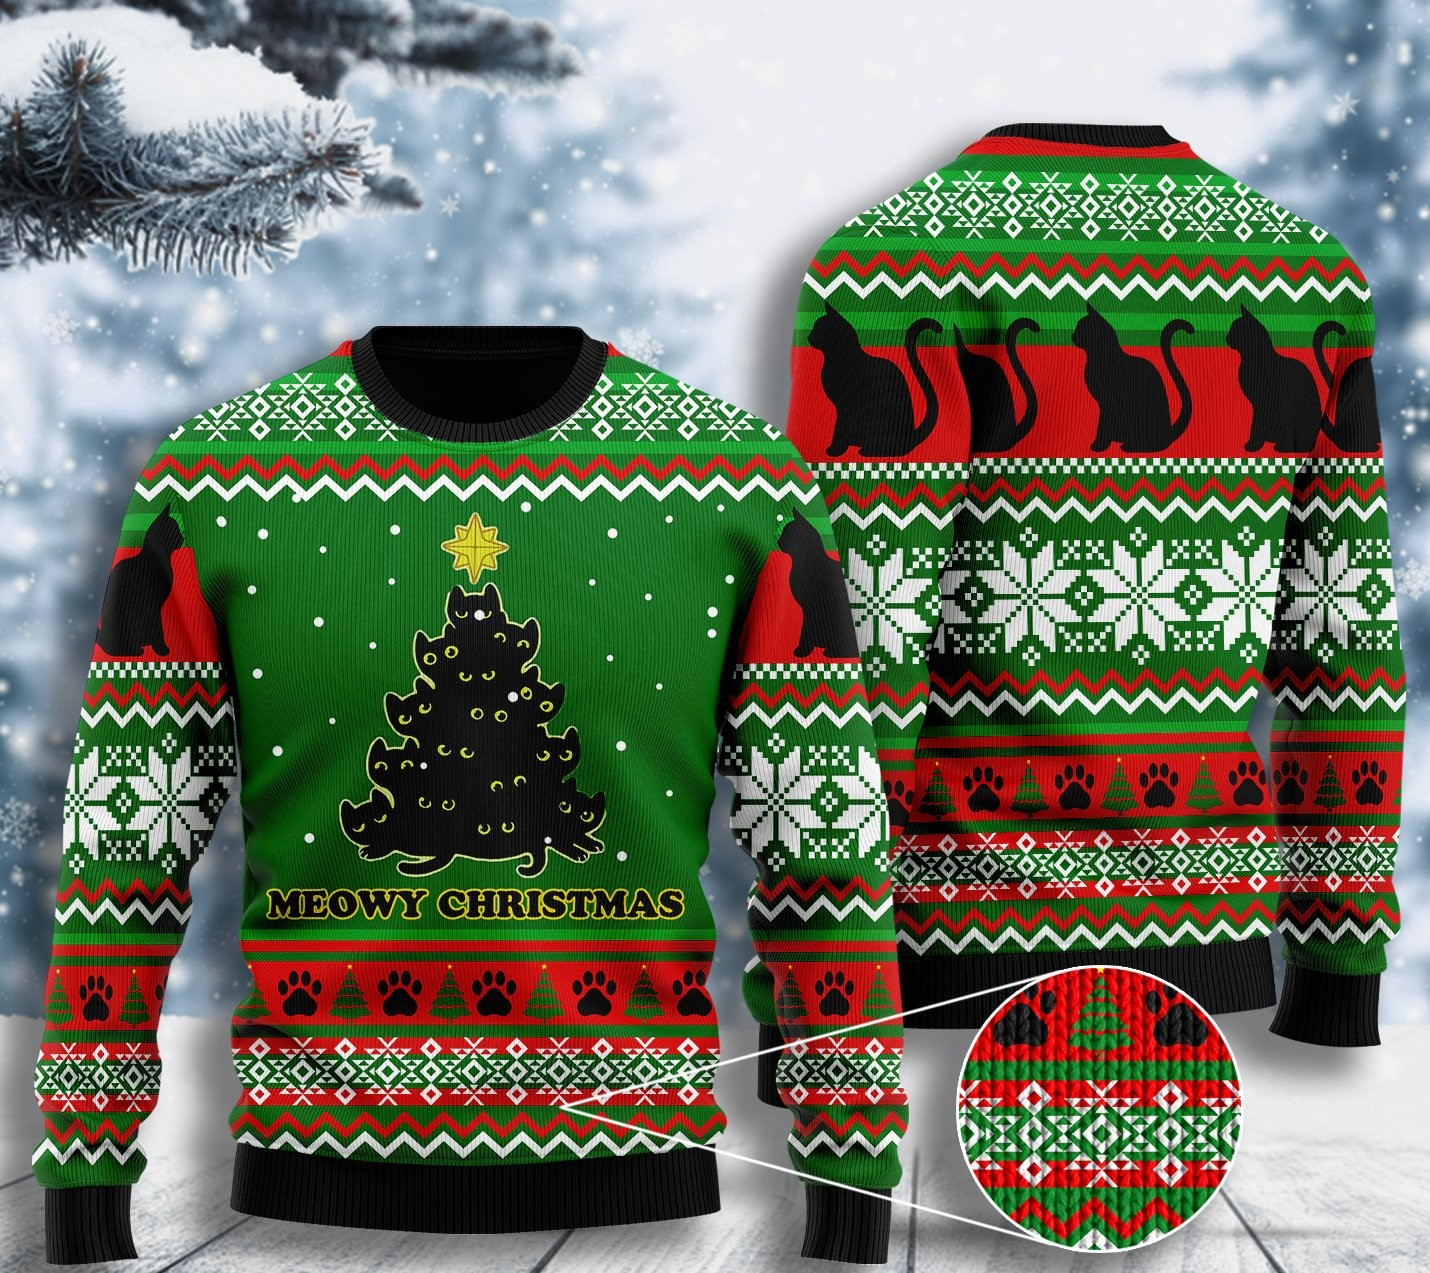 black cat meowy christmas tree all over printed ugly christmas sweater 2 - Copy